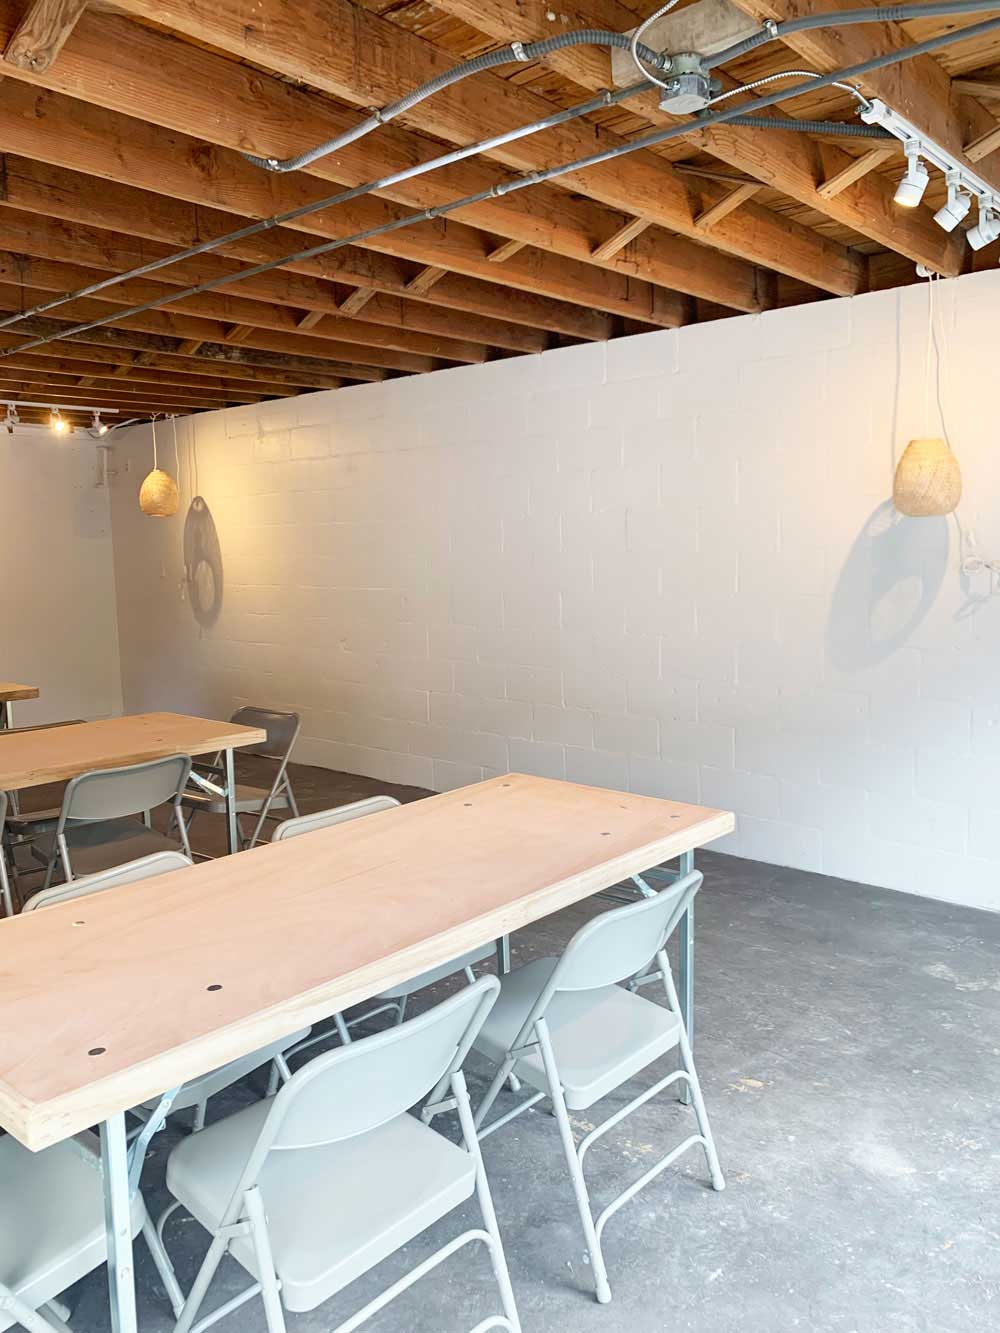 small industrial space with wood tables and chairs